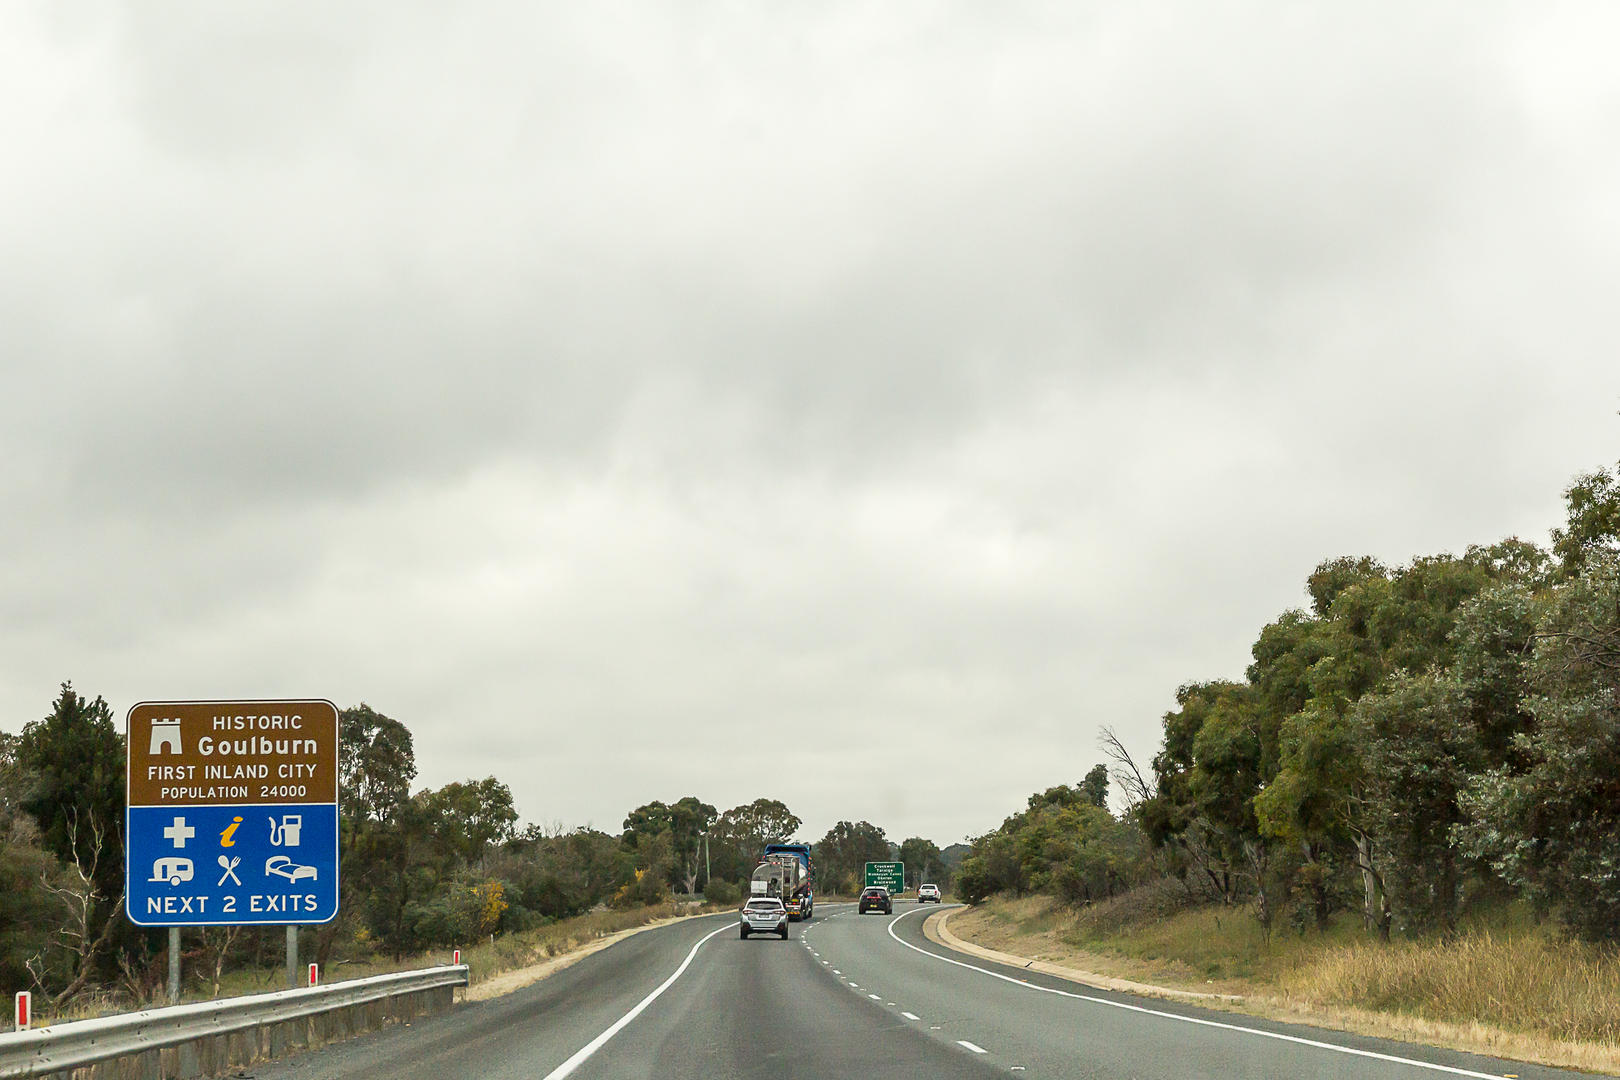 The Highway 35